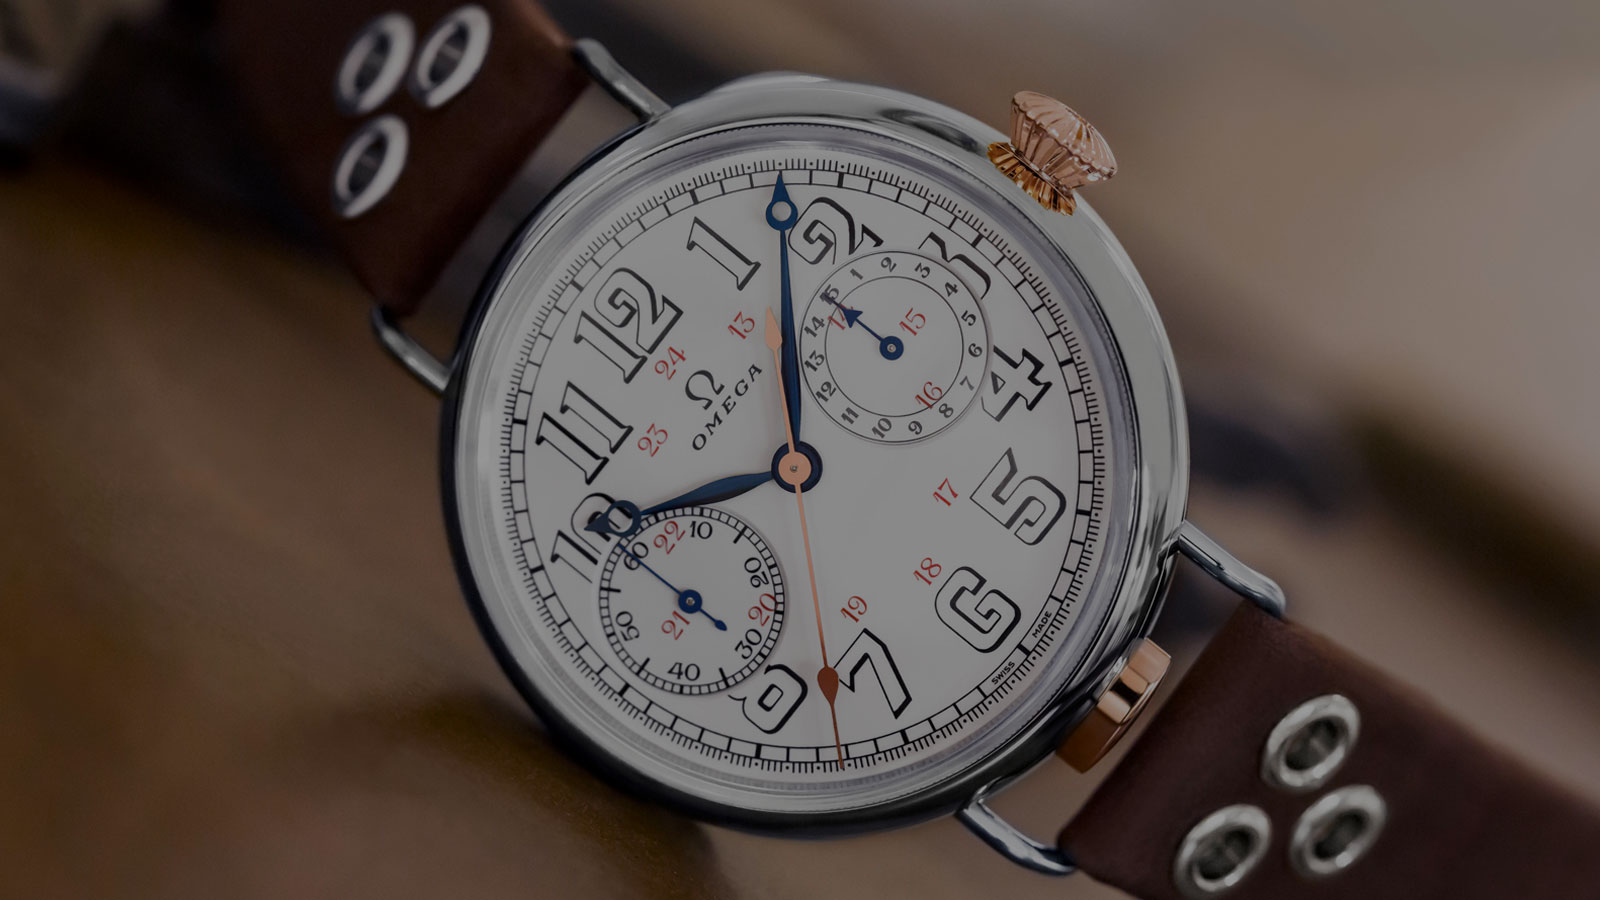 Besondere Modelle First OMEGA Wrist-Chronograph Kollektion - Video - 53961